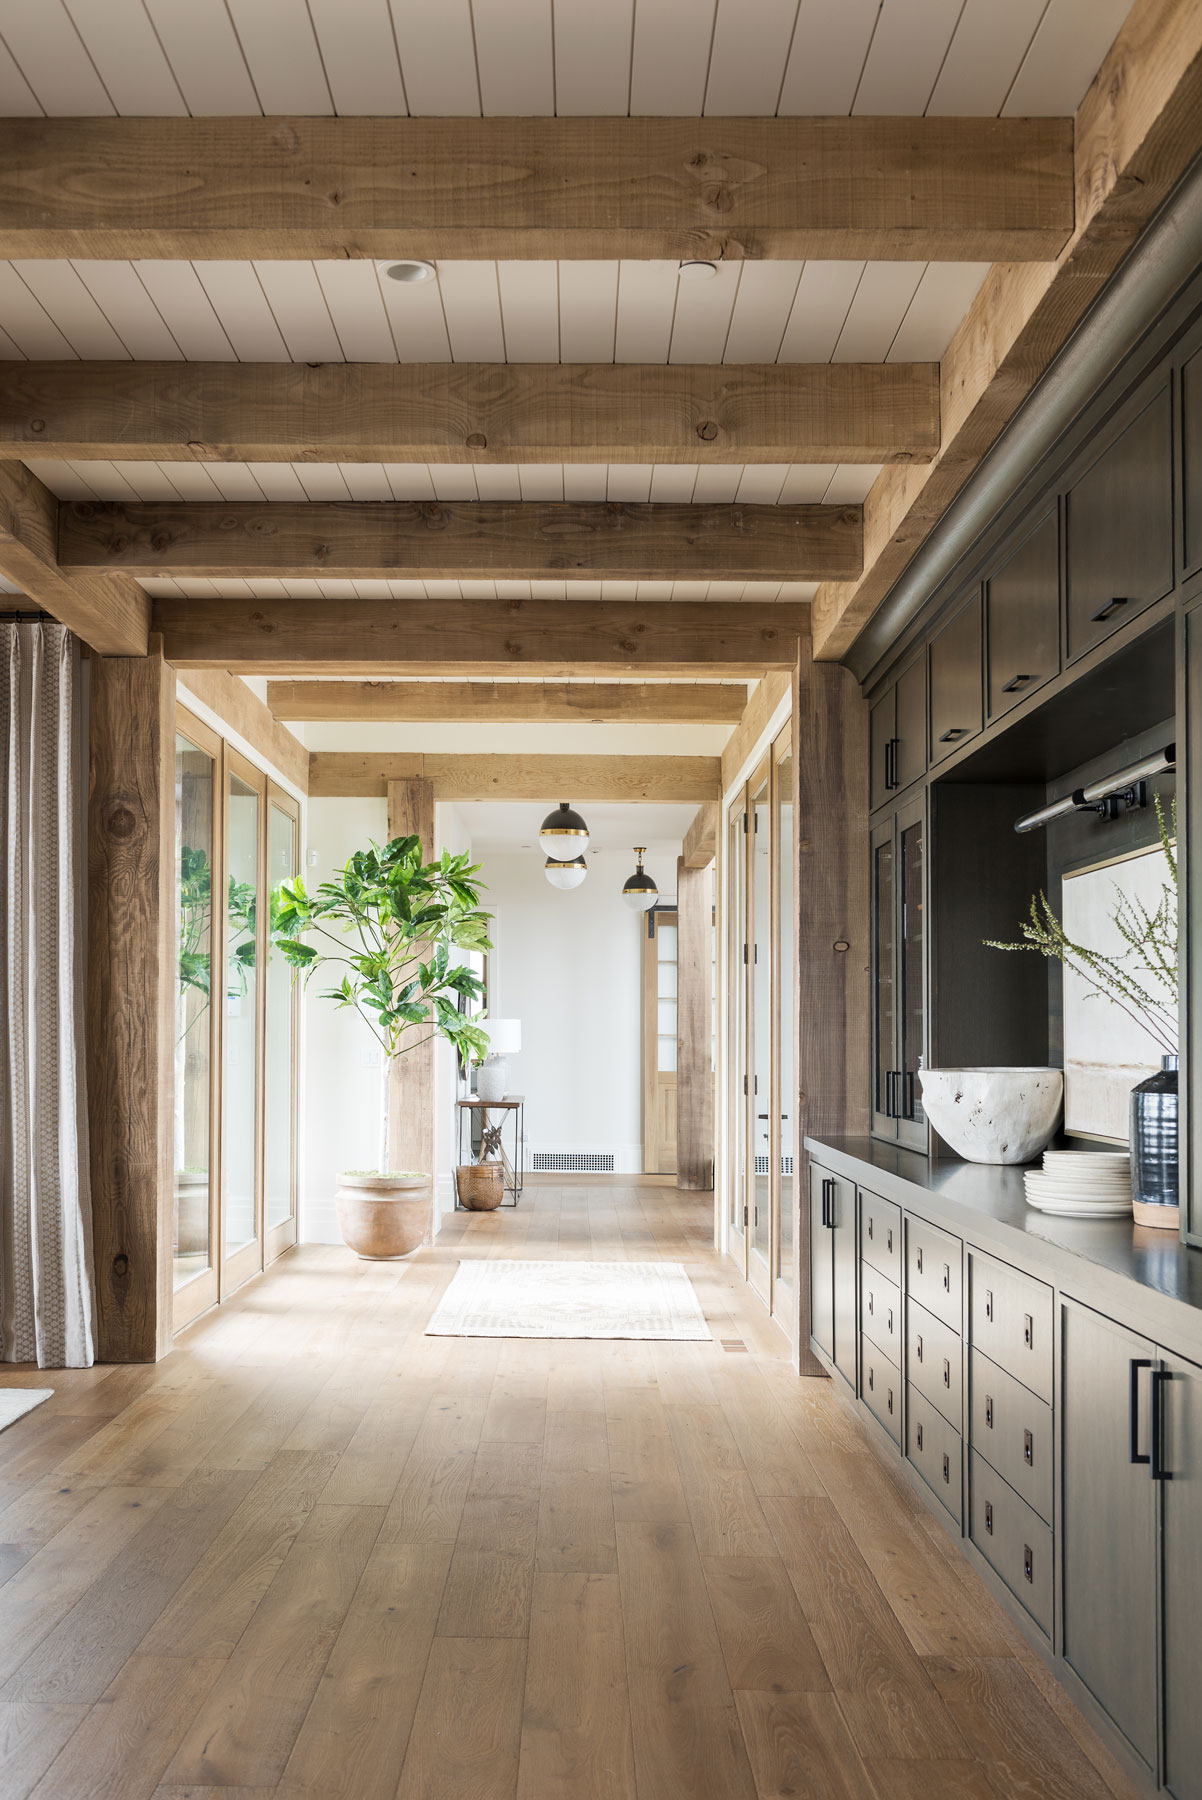 design feature | ceiling play